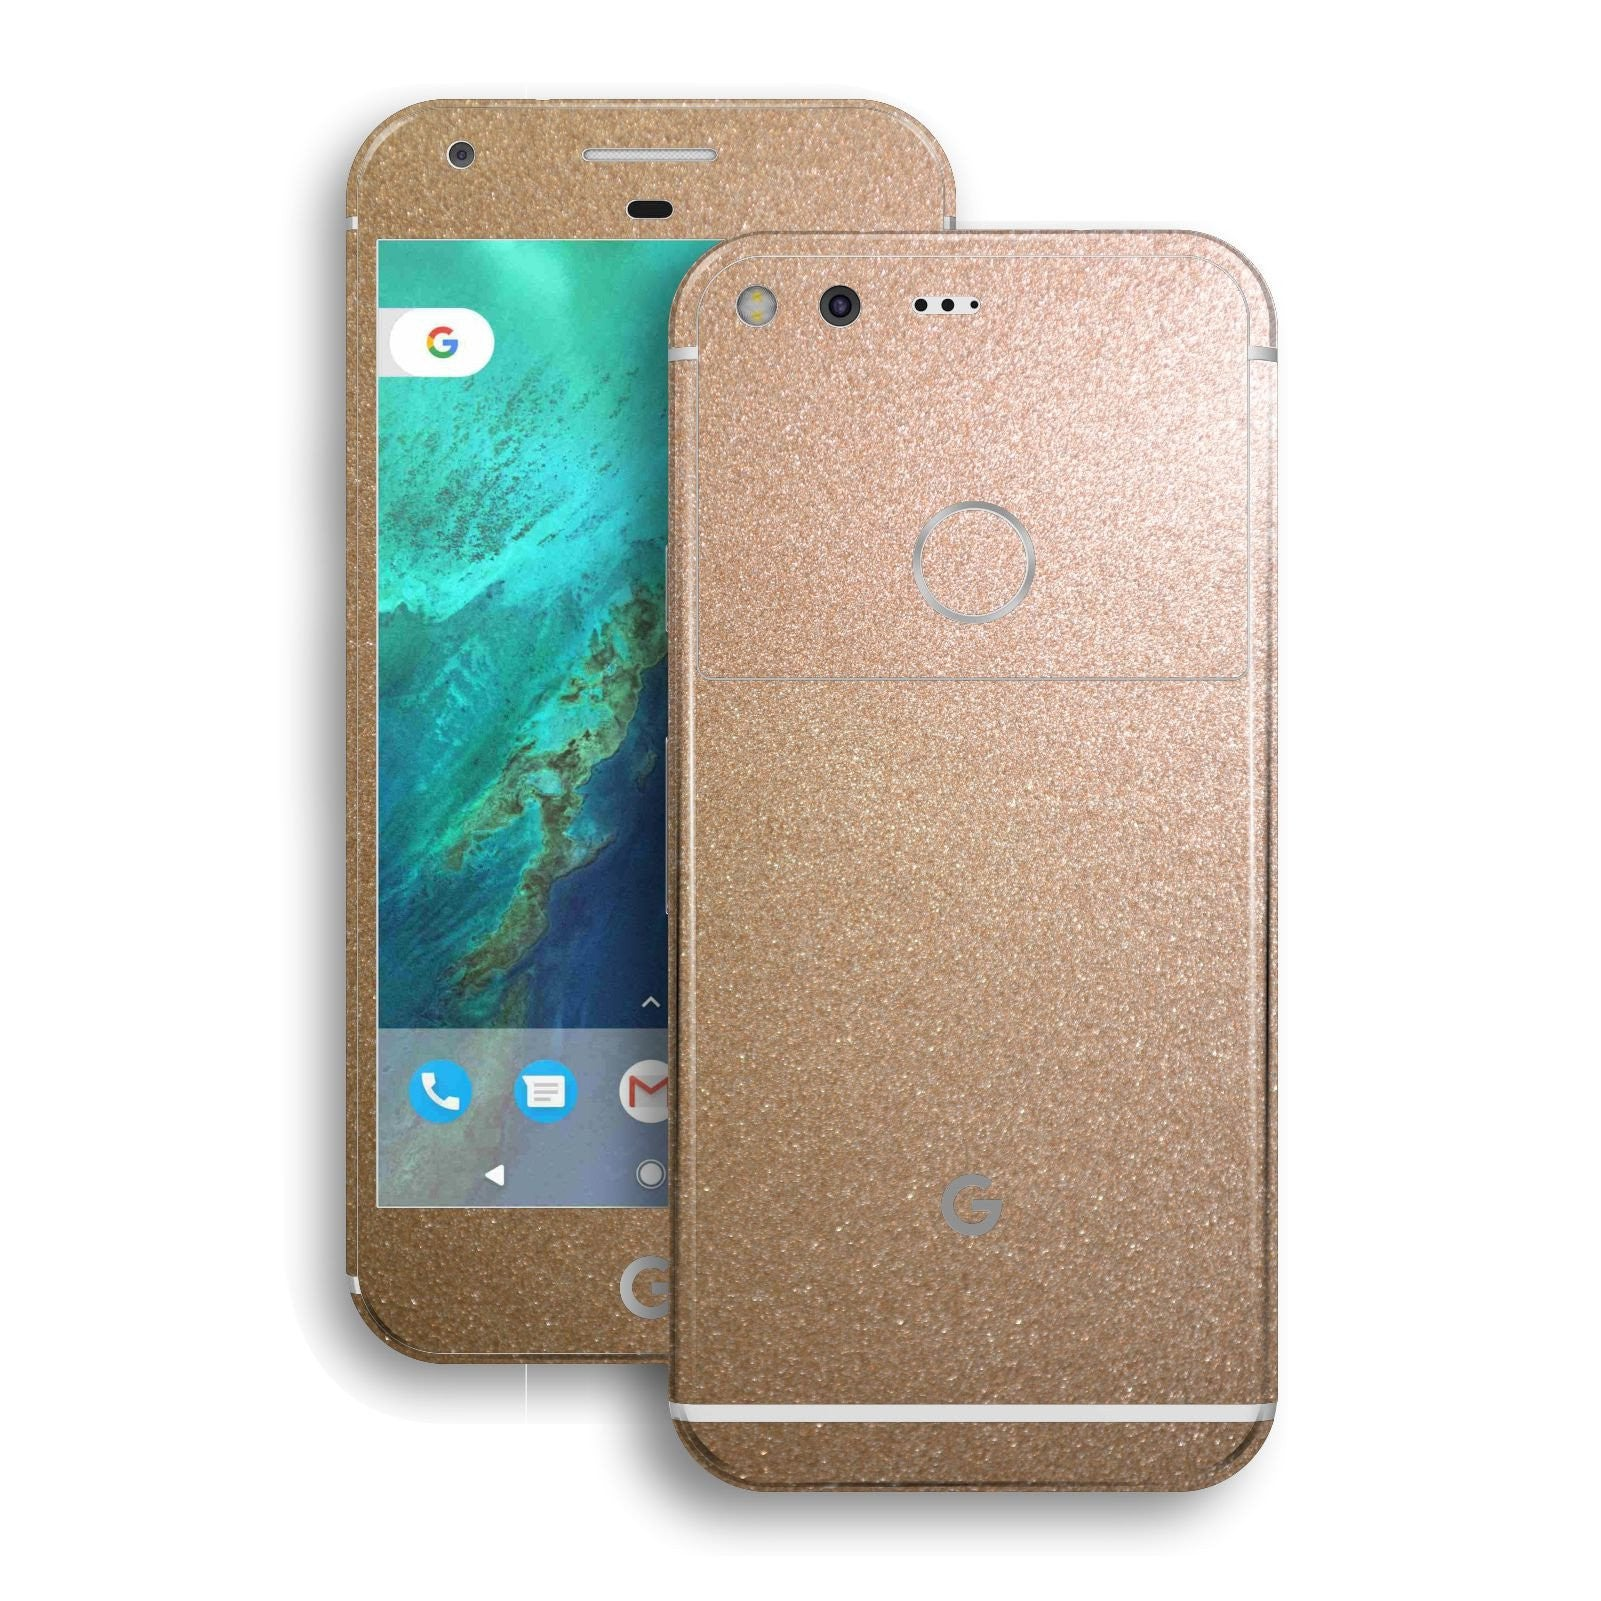 Google Pixel XL Glossy Antique Bronze Metallic Skin Wrap Decal by EasySkinz